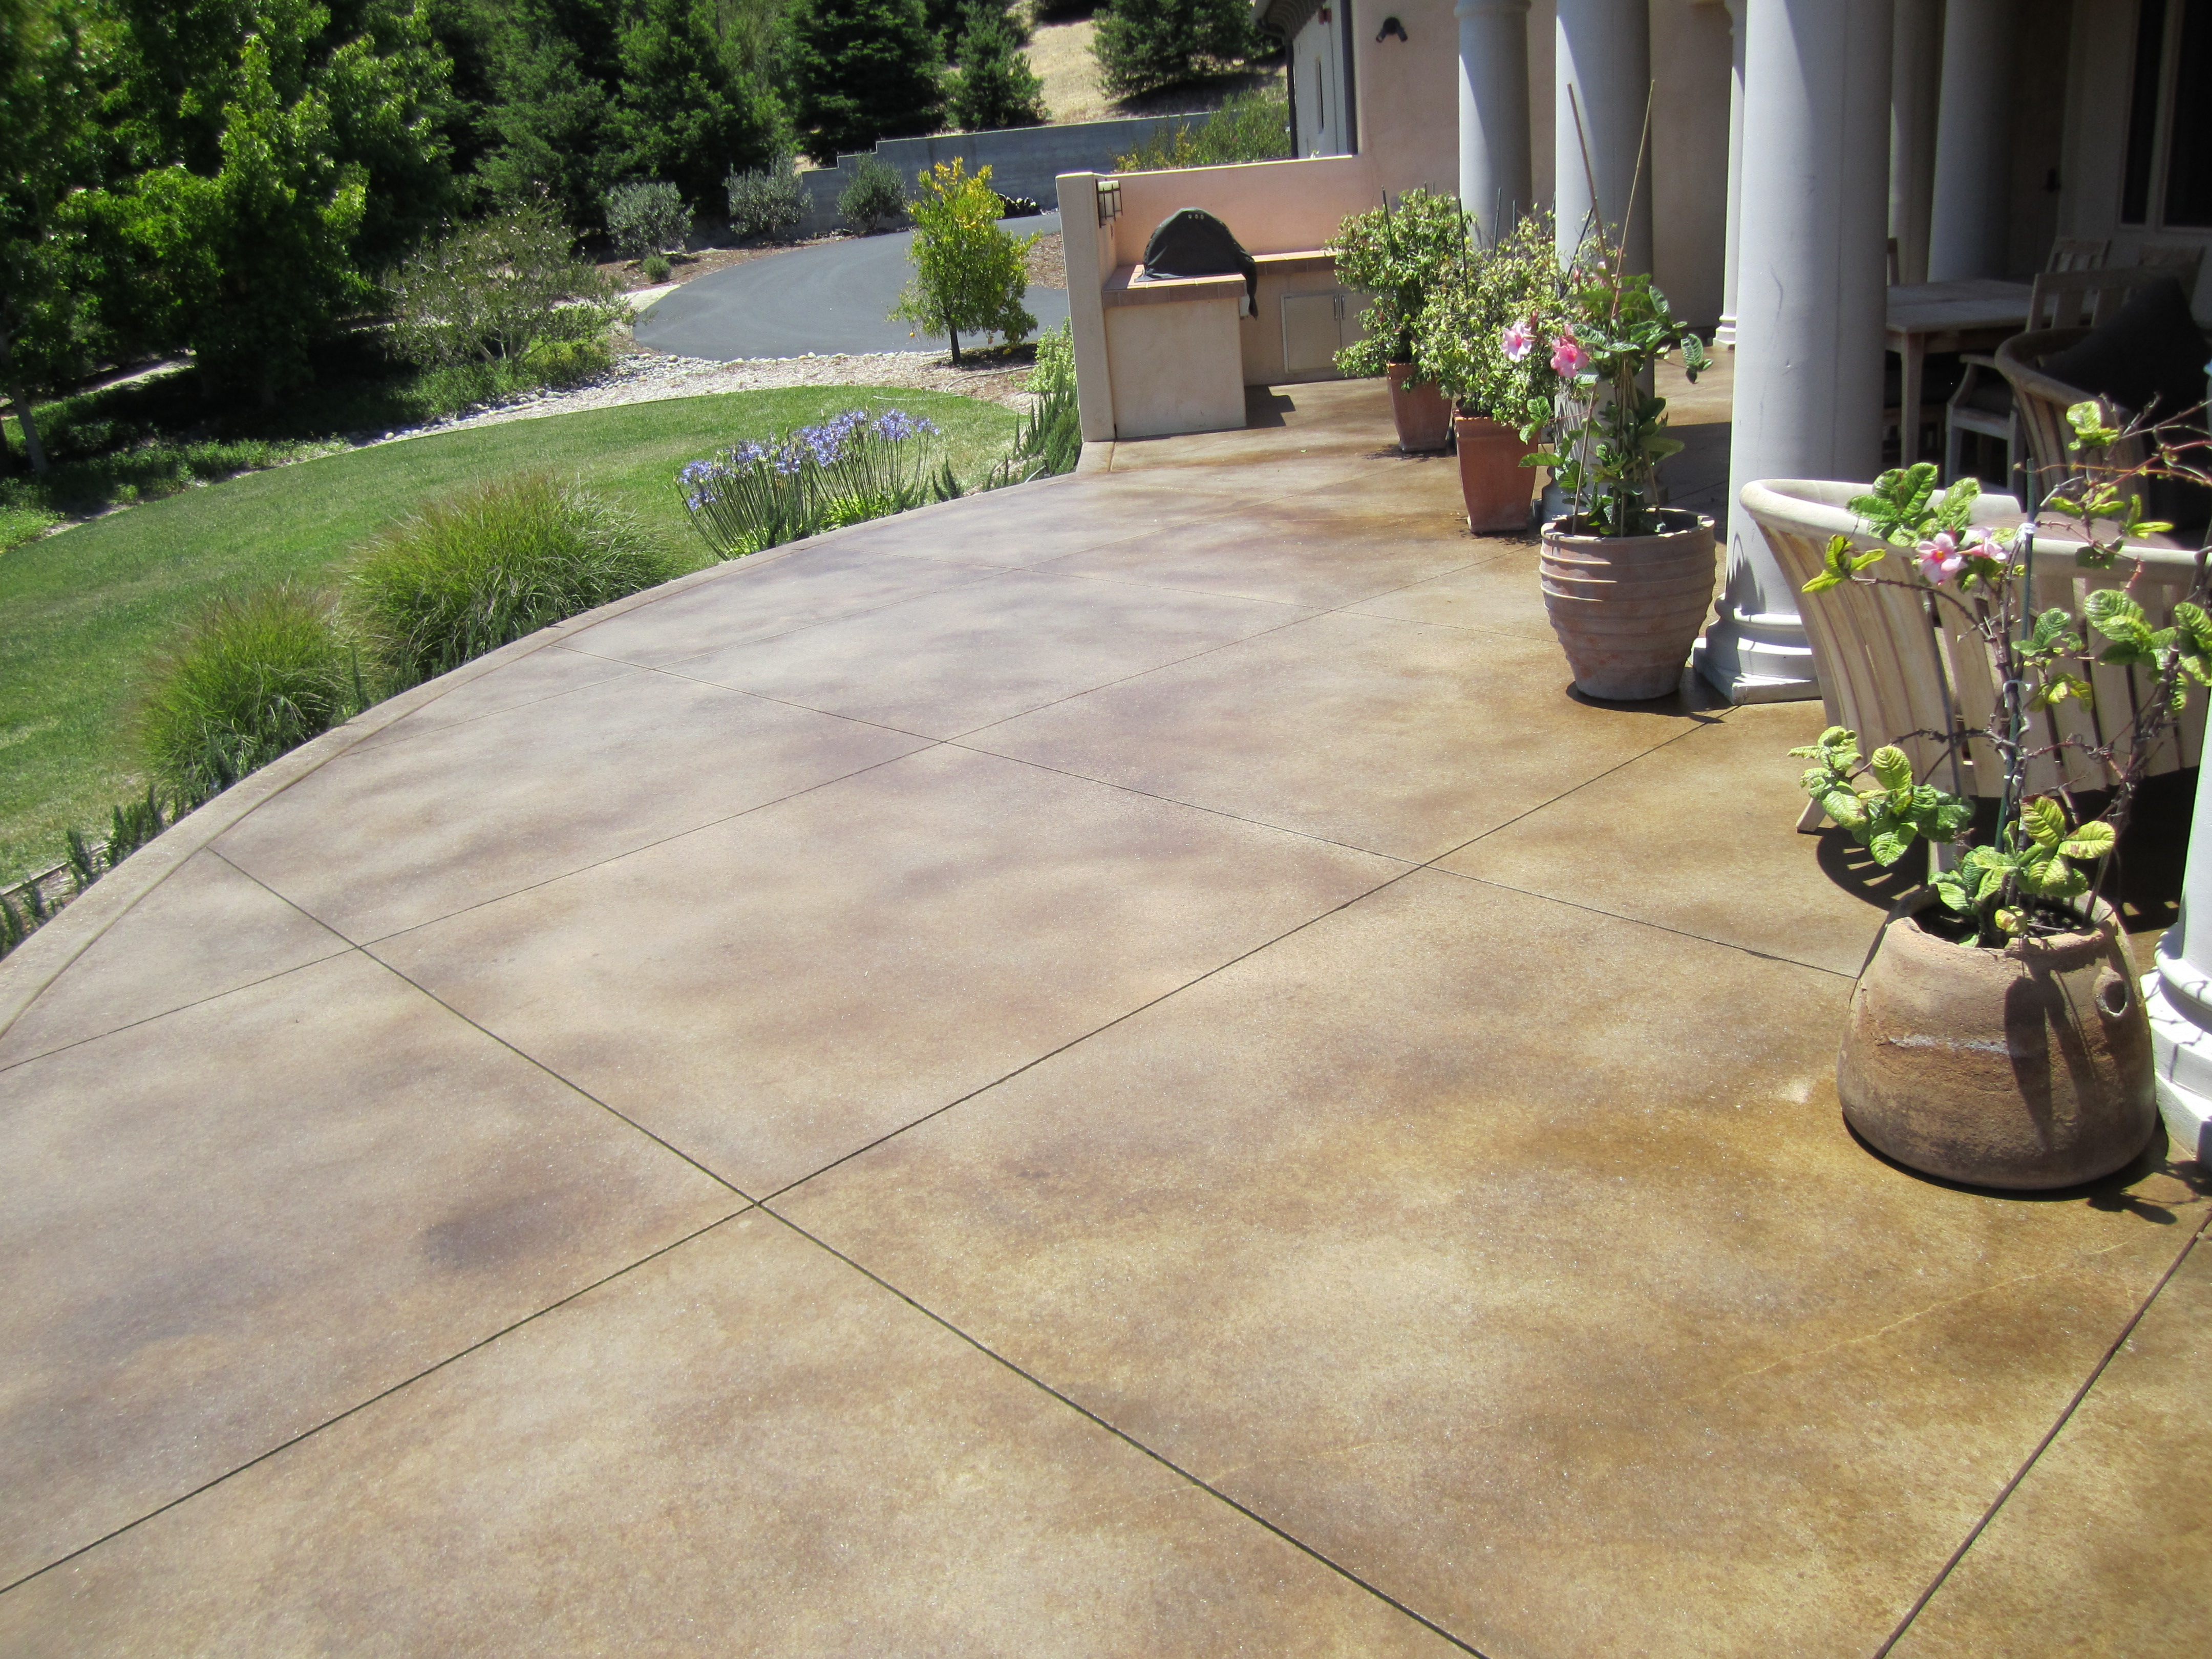 Etonnant Brilliant Concrete Patio Stain 1000 Images About Concrete On Intended For  Measurements 4320 X 3240